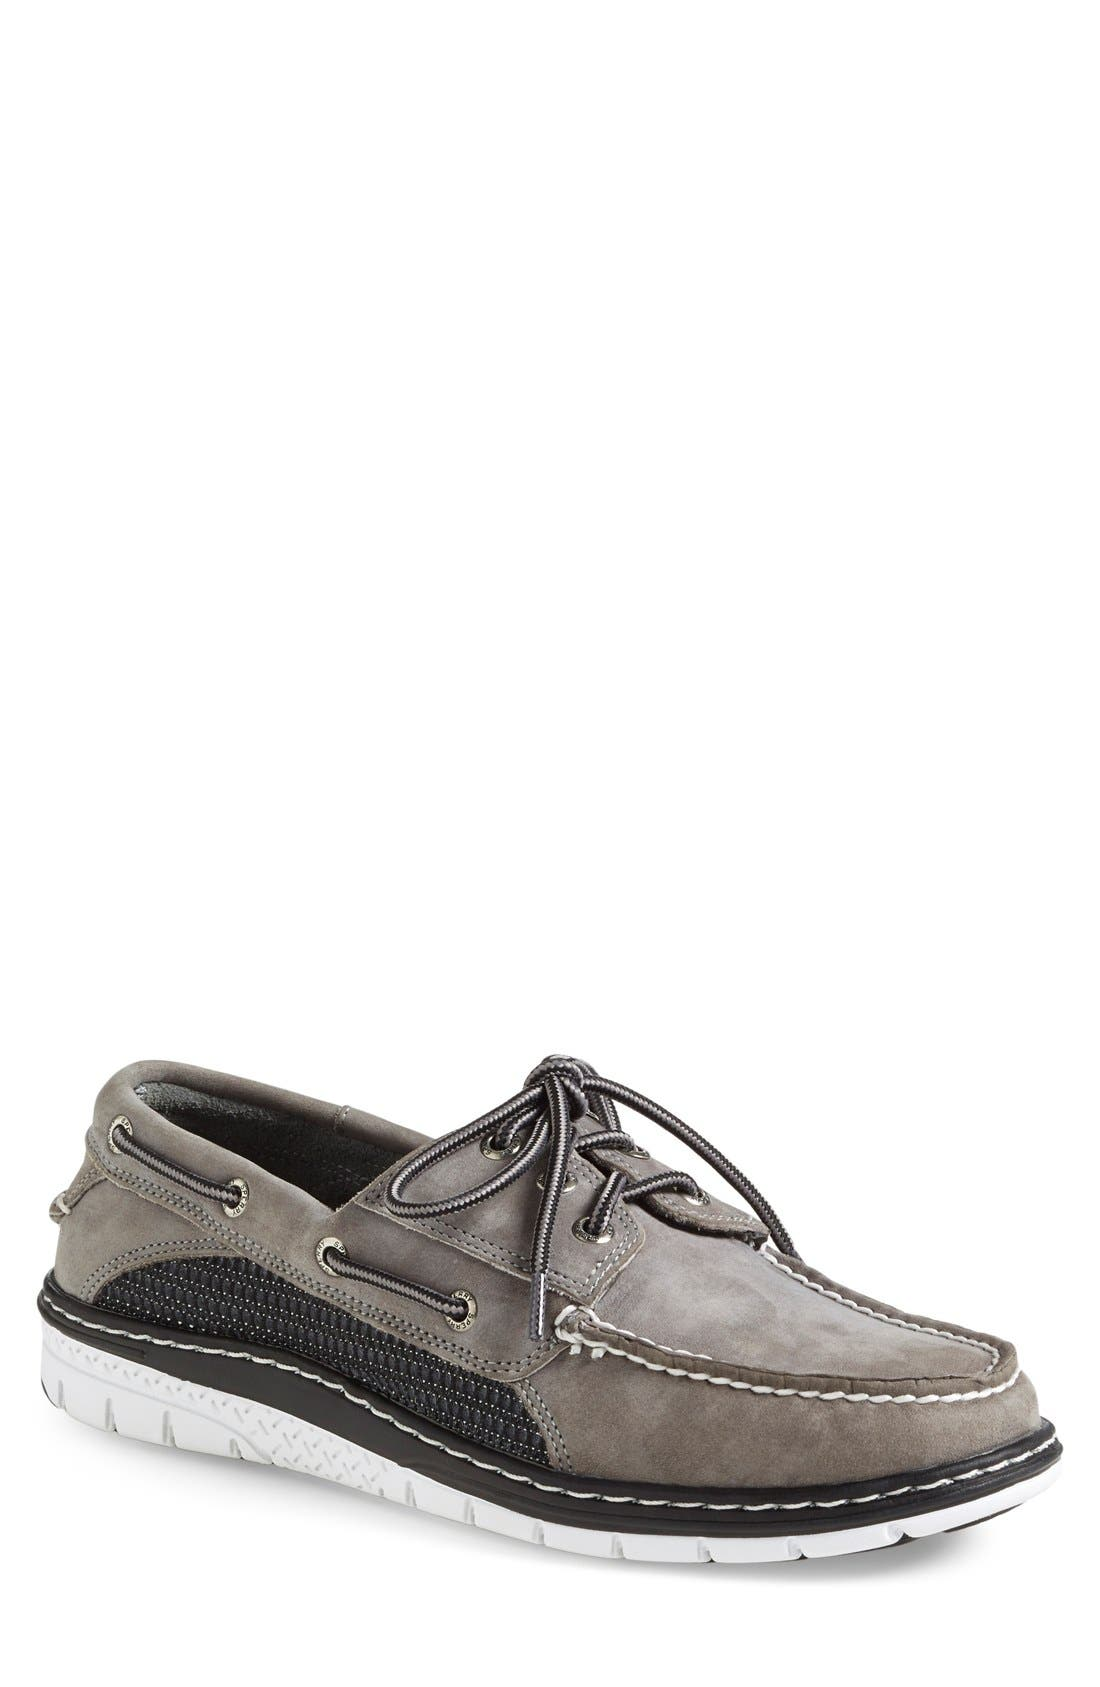 'Billfish Ultralite' Boat Shoe,                             Main thumbnail 6, color,